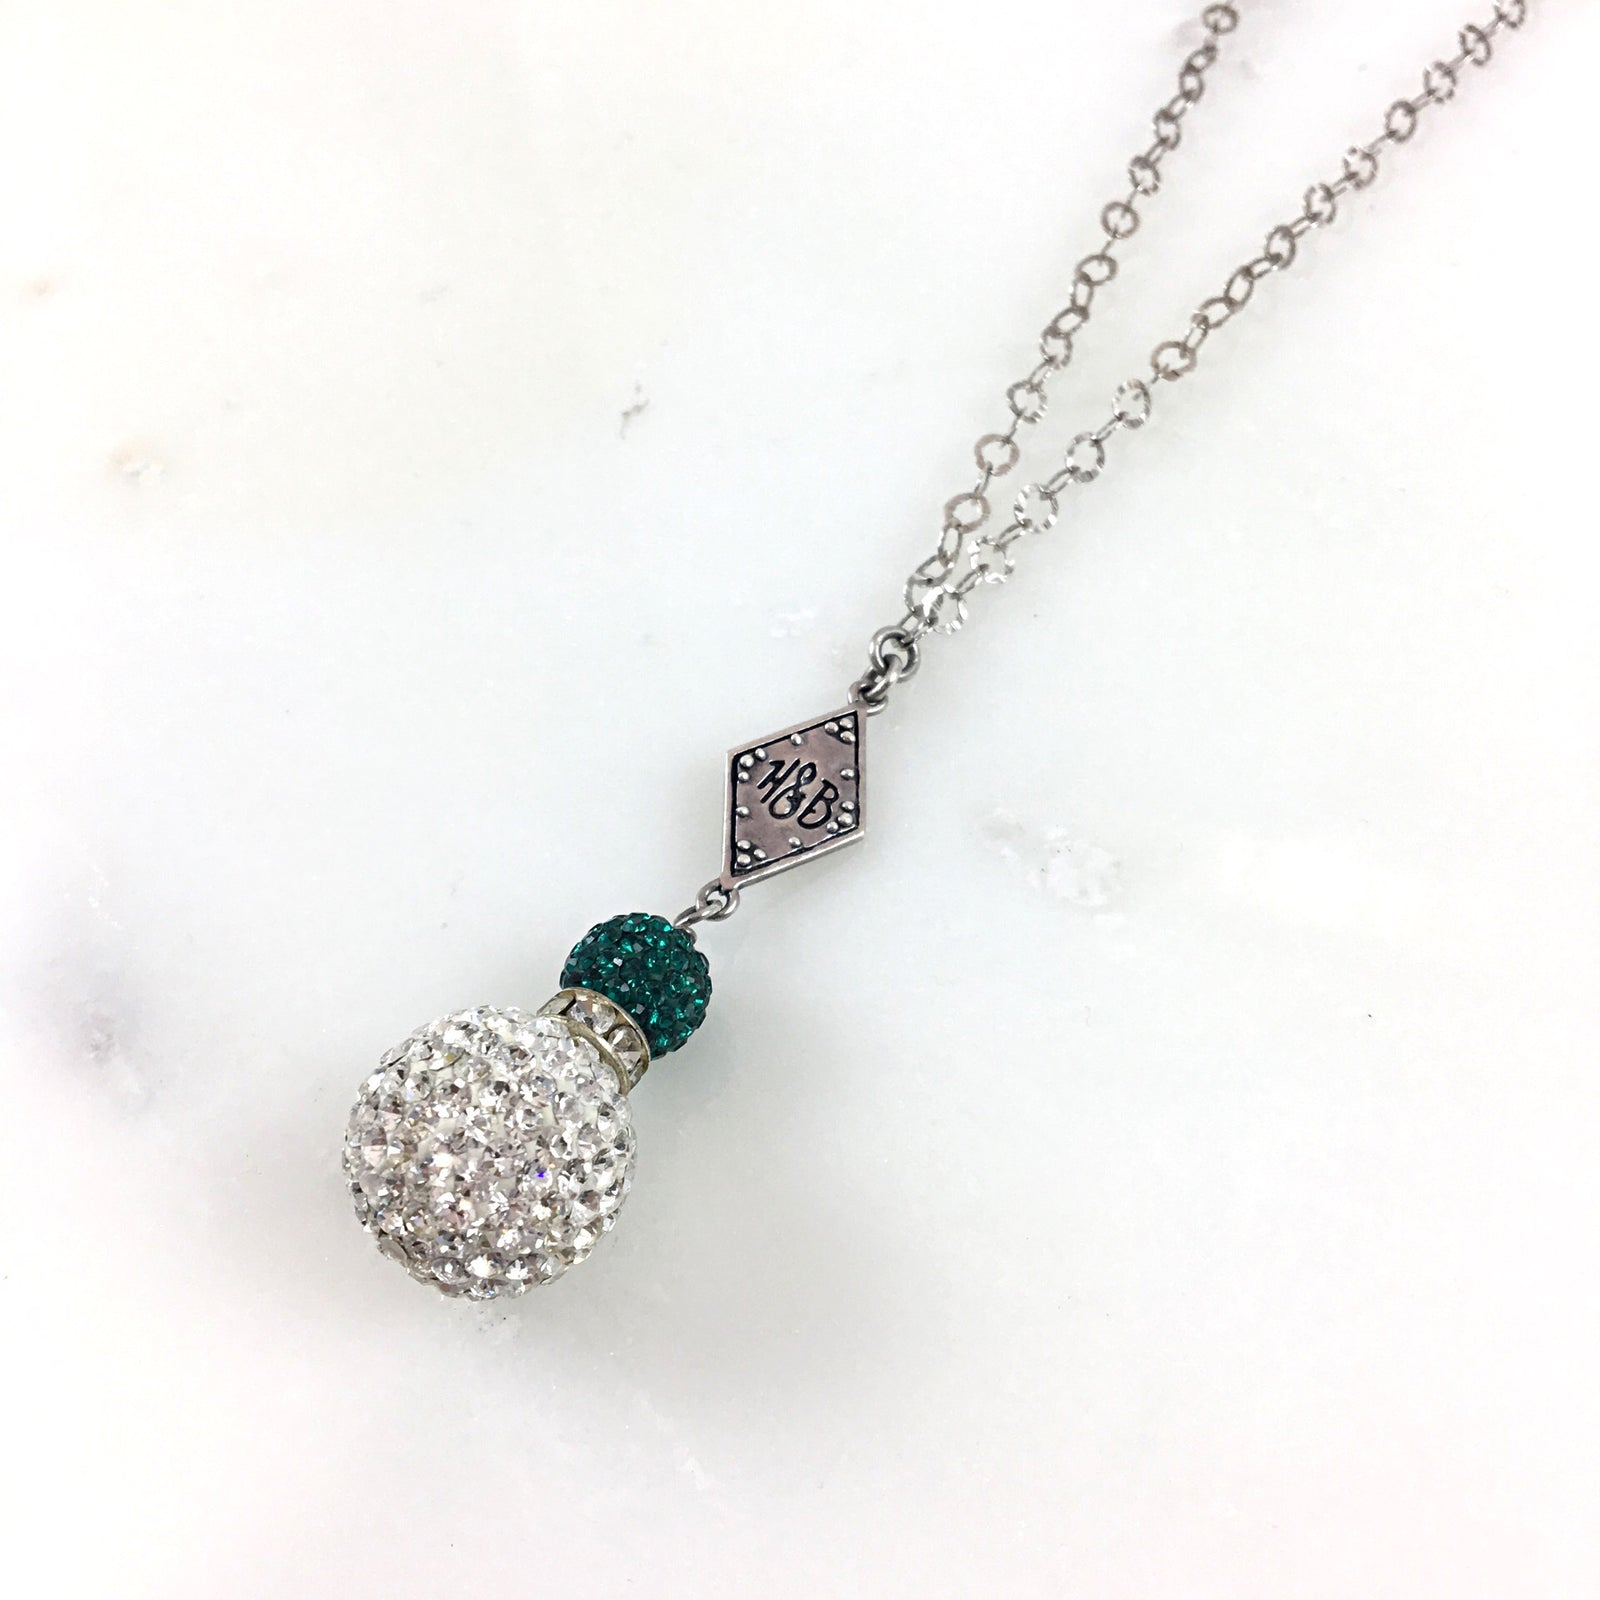 Riders Green Necklace